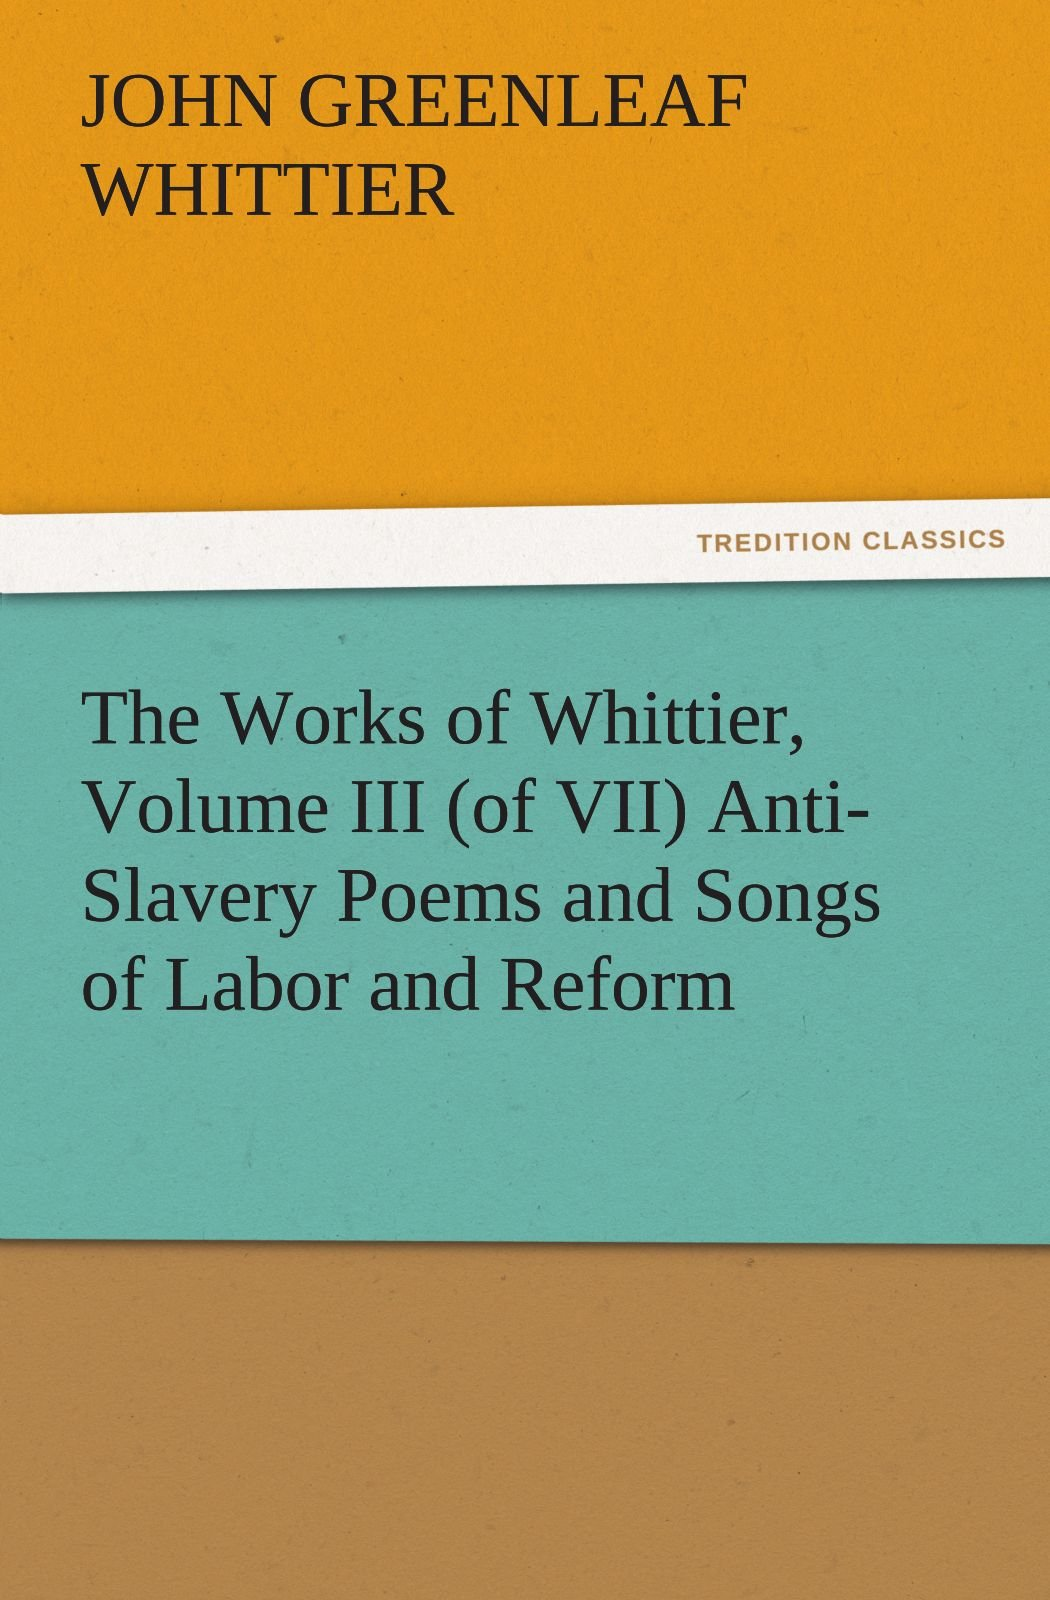 Download The Works of Whittier, Volume III (of VII) Anti-Slavery Poems and Songs of Labor and Reform (TREDITION CLASSICS) PDF